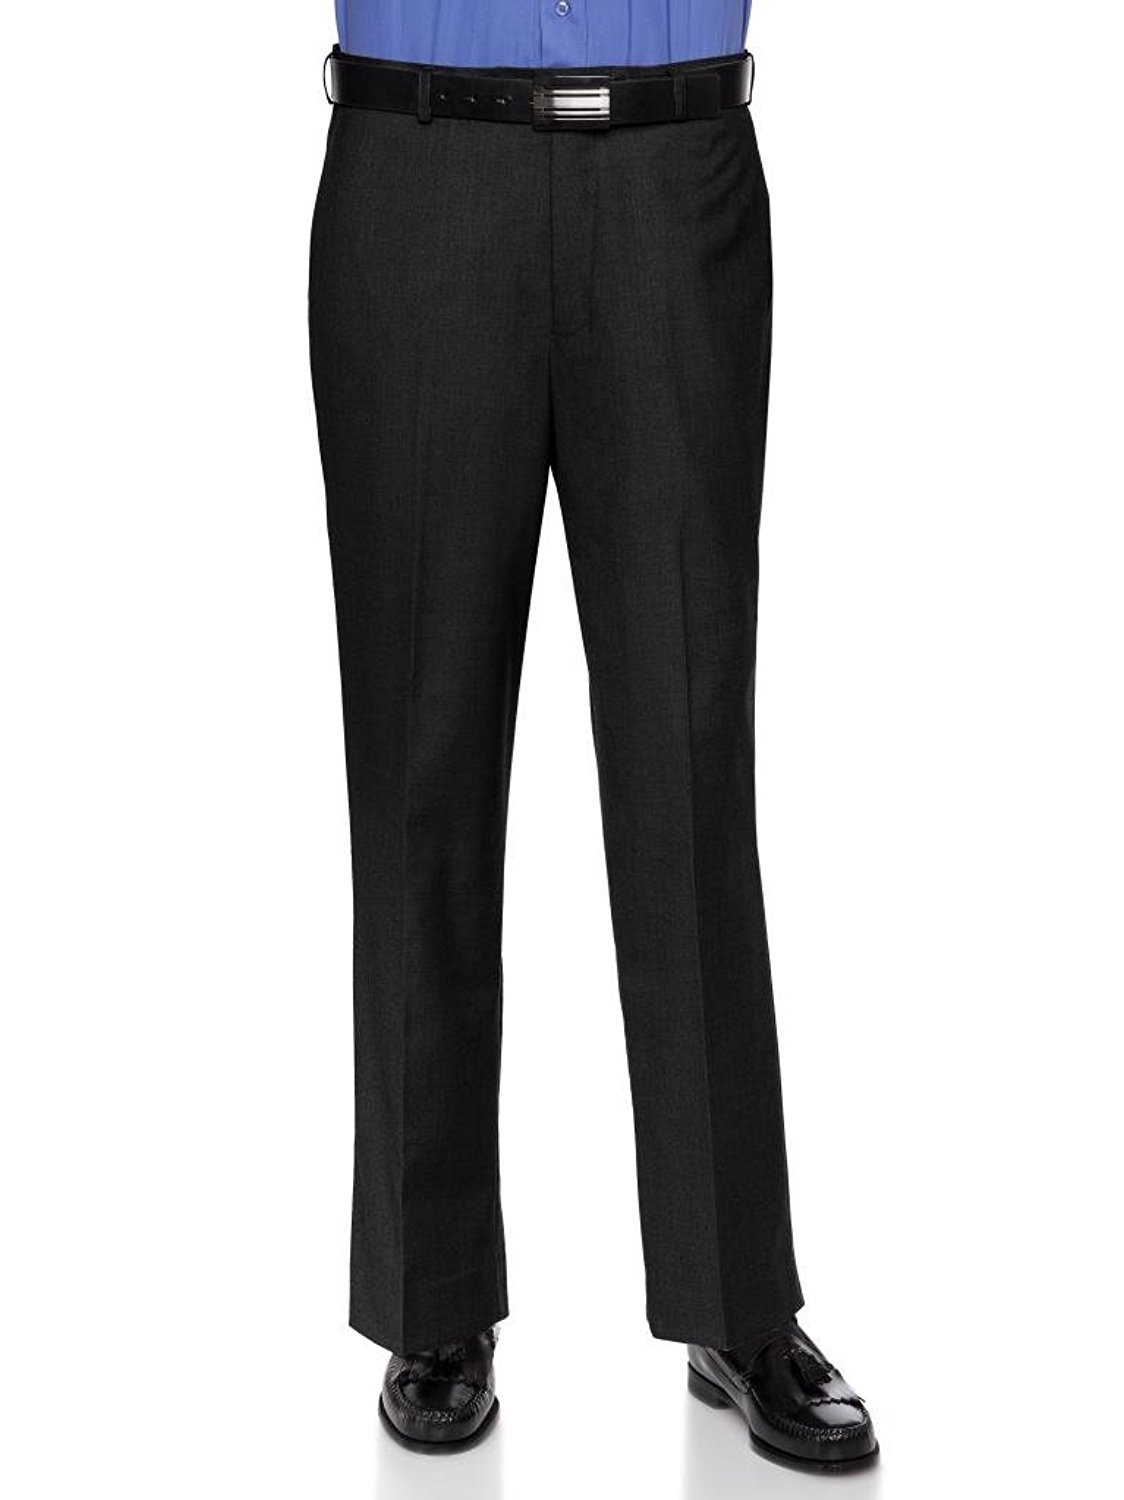 rgm mens modern fit dress pant